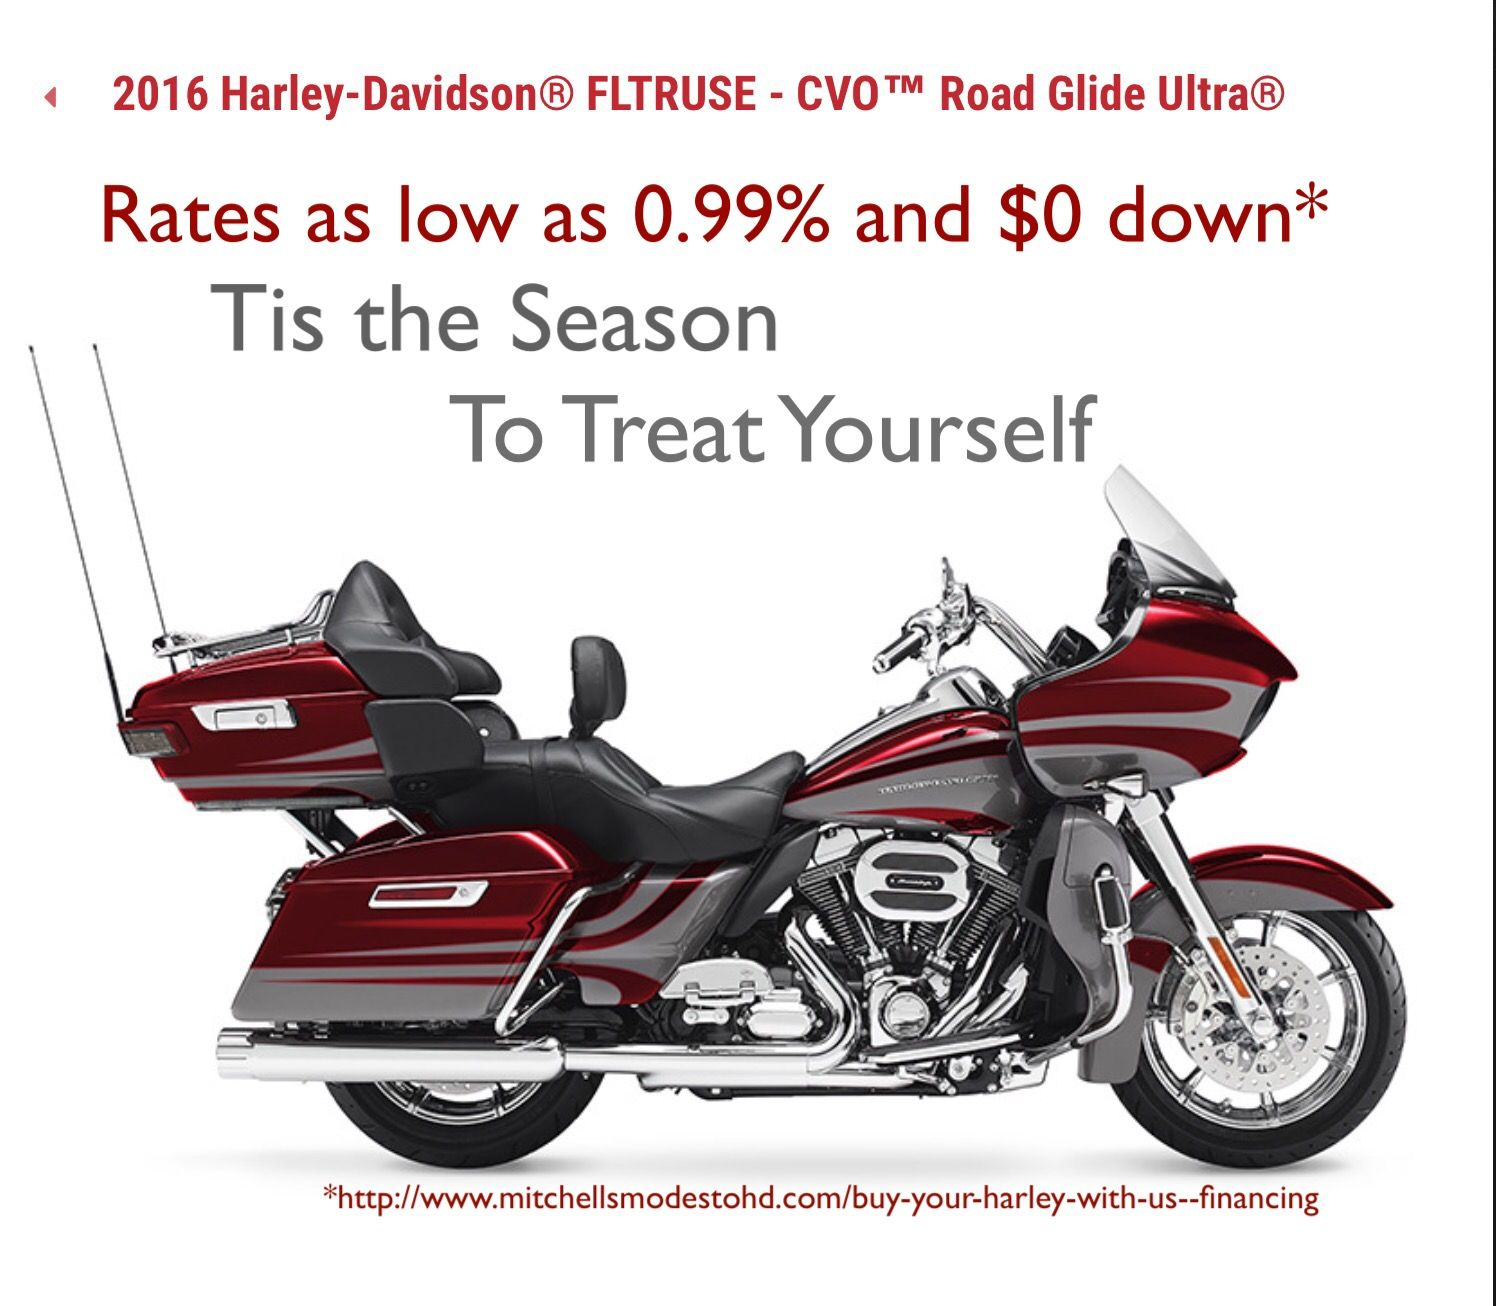 Pin by Mitchell's Modesto Harley Davi on Events Event